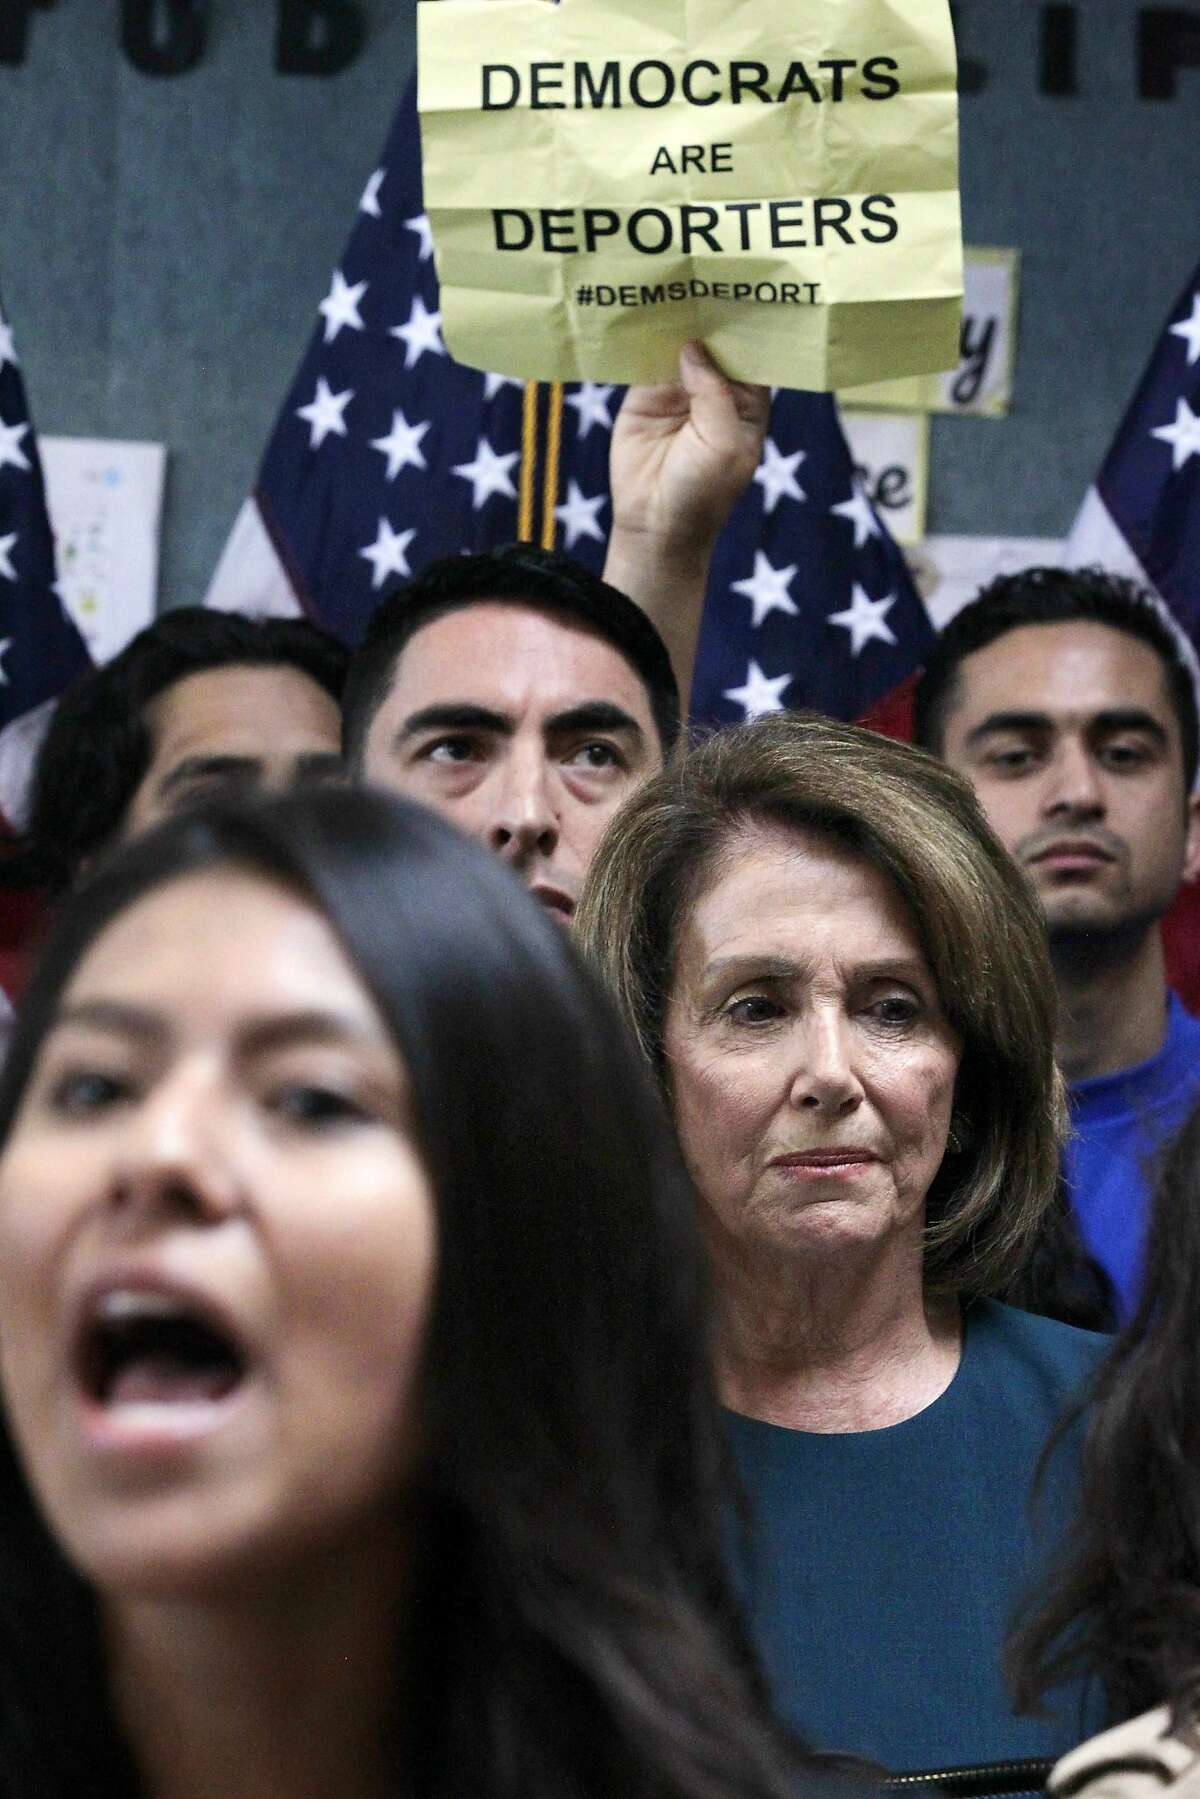 U.S. Rep. Nancy Pelosi, D-Calif., waits as protesters yell during a press conference on the Deferred Action for Childhood Arrivals, or DACA program, on Monday, Sept. 18, 2017 in San Francisco. Several dozen young immigrants shouted down Pelosi, the top Democrat in the U.S. House, on Monday during an event in San Francisco, following her recent conversations with President Donald Trump over the future of a program that grants many of them legal status. (Lea Suzuki/San Francisco Chronicle via AP)